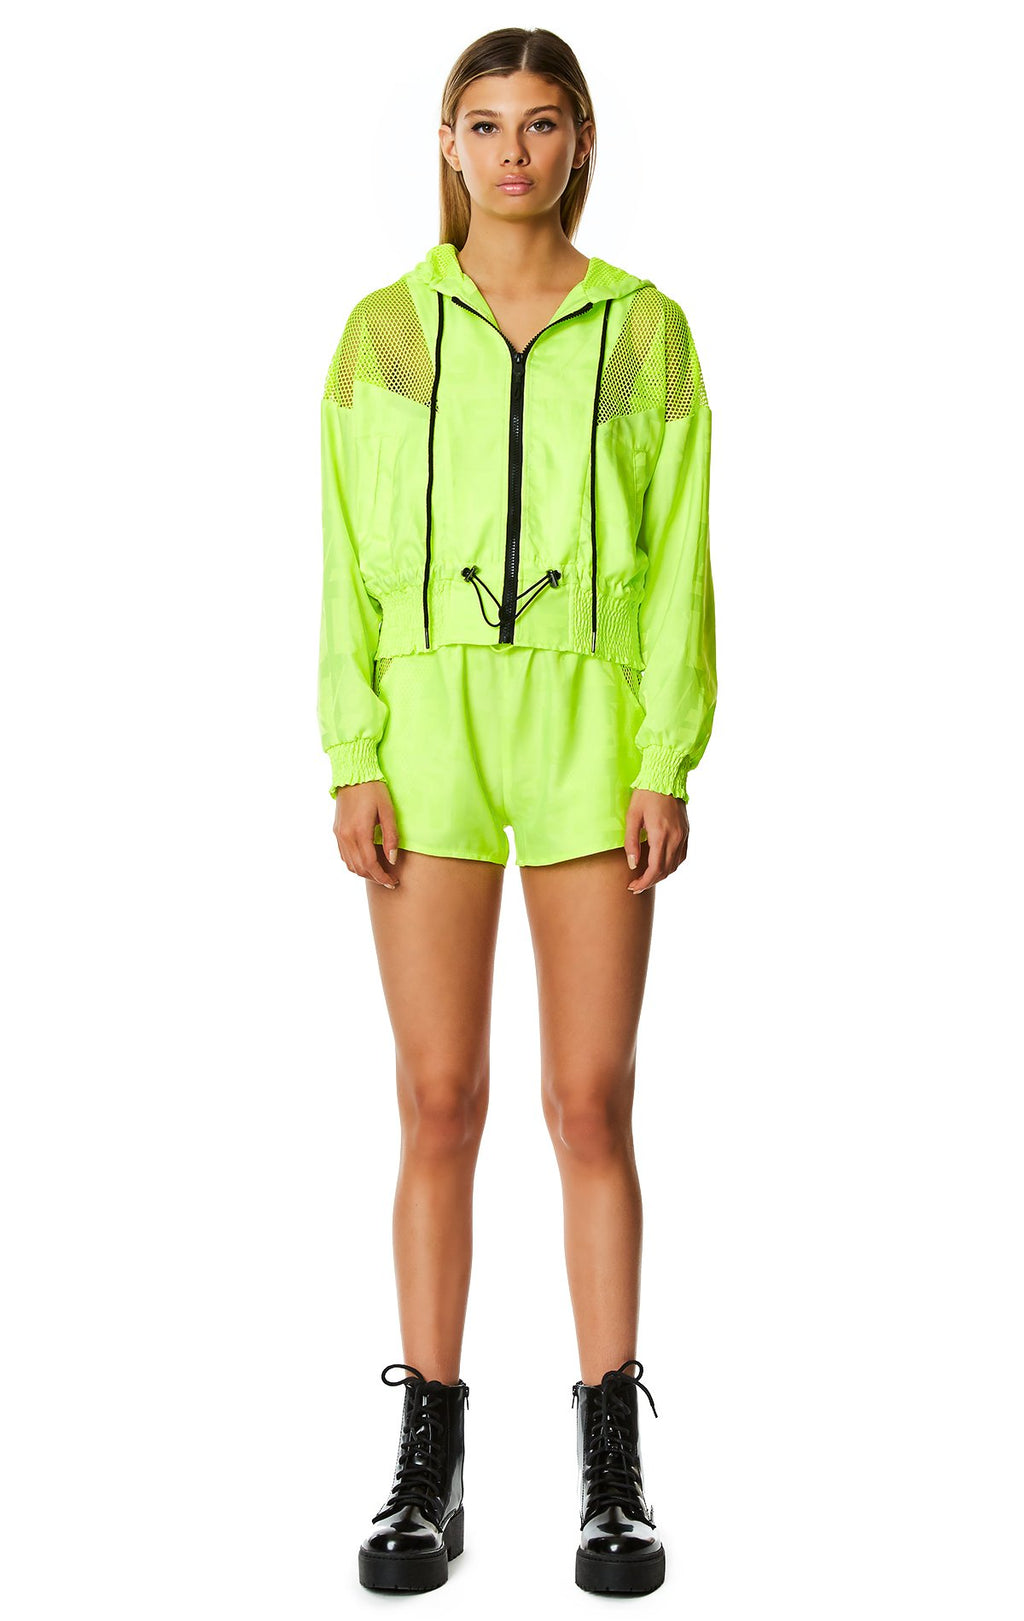 DIGITAL NEON NET INSERT WINDBREAKER JACKET